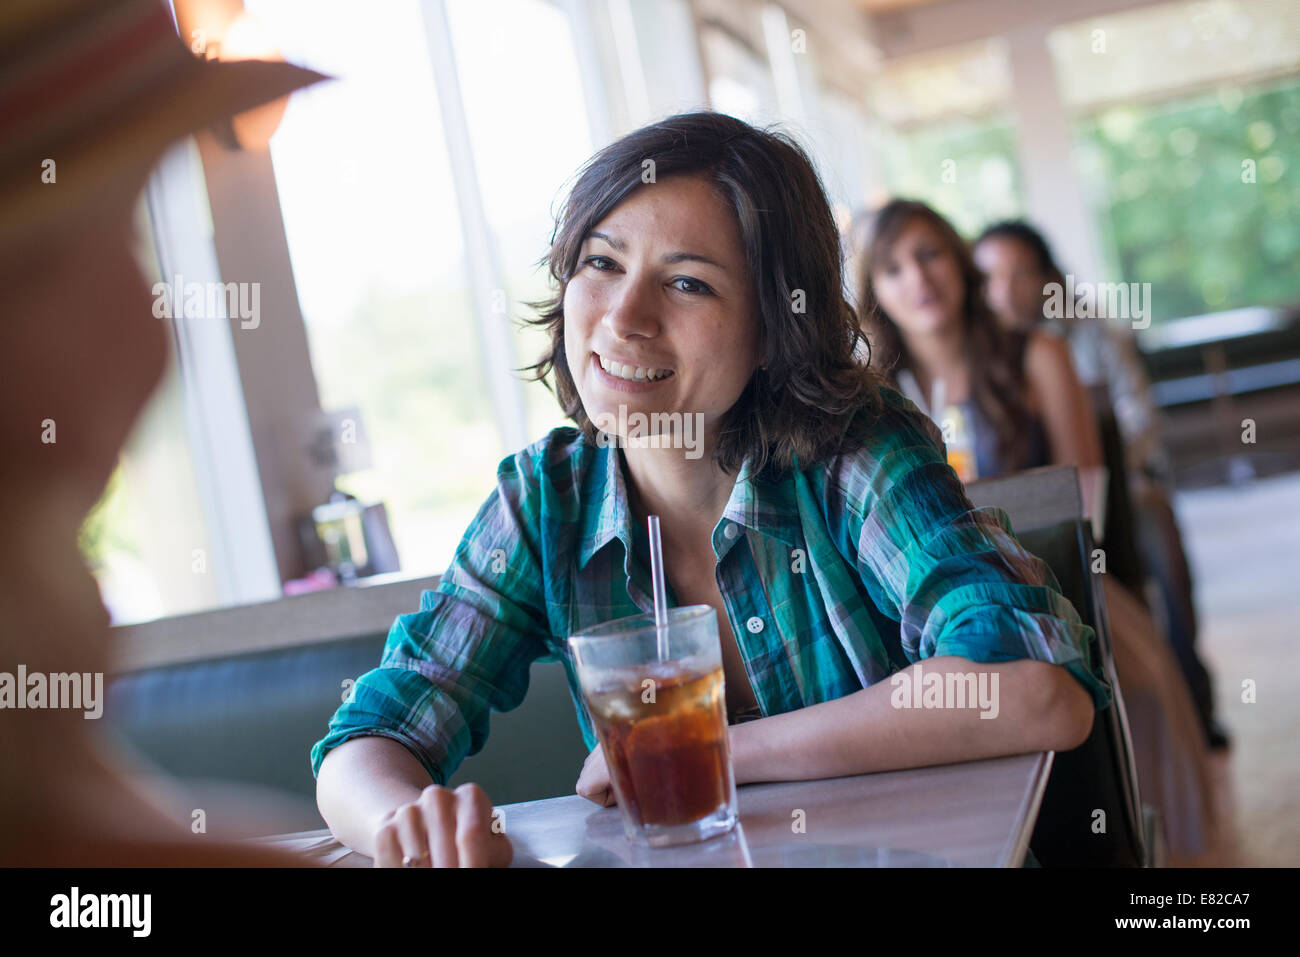 A woman seated at a diner looking at her companion. A long cool drink with a straw. - Stock Image